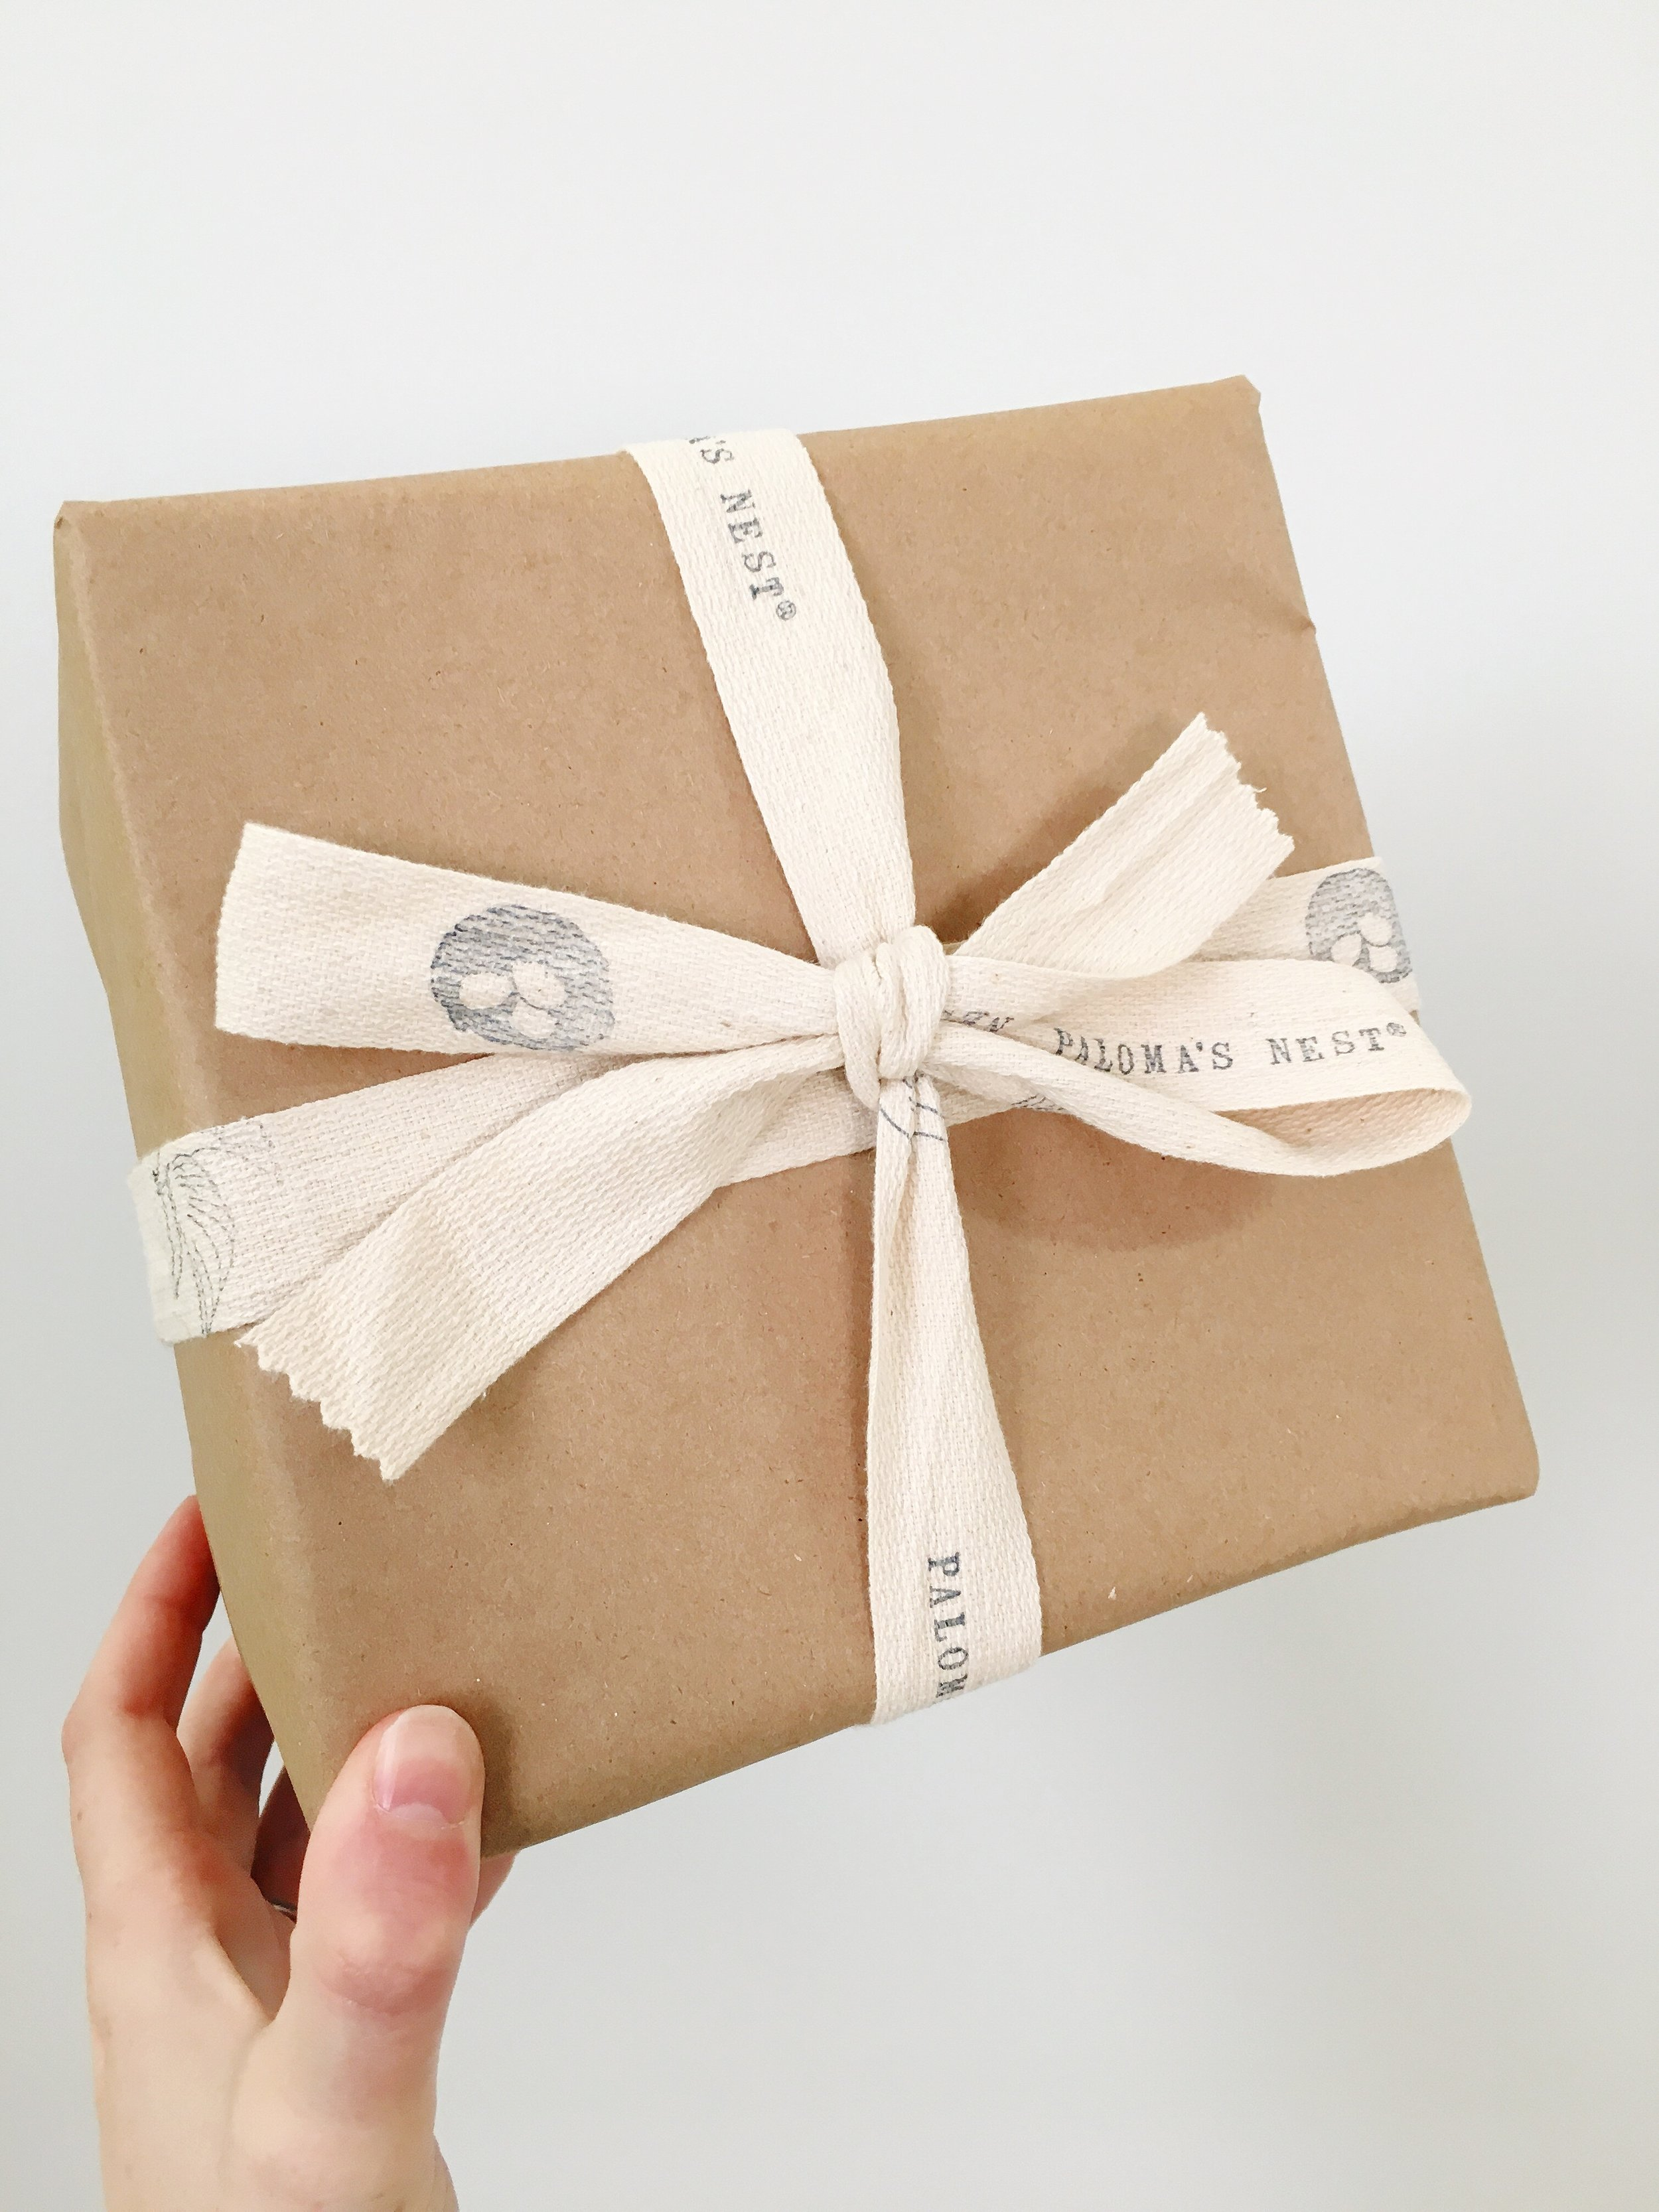 Creatiate Rubber Stamps Pretty Packaging Project 2 .jpg